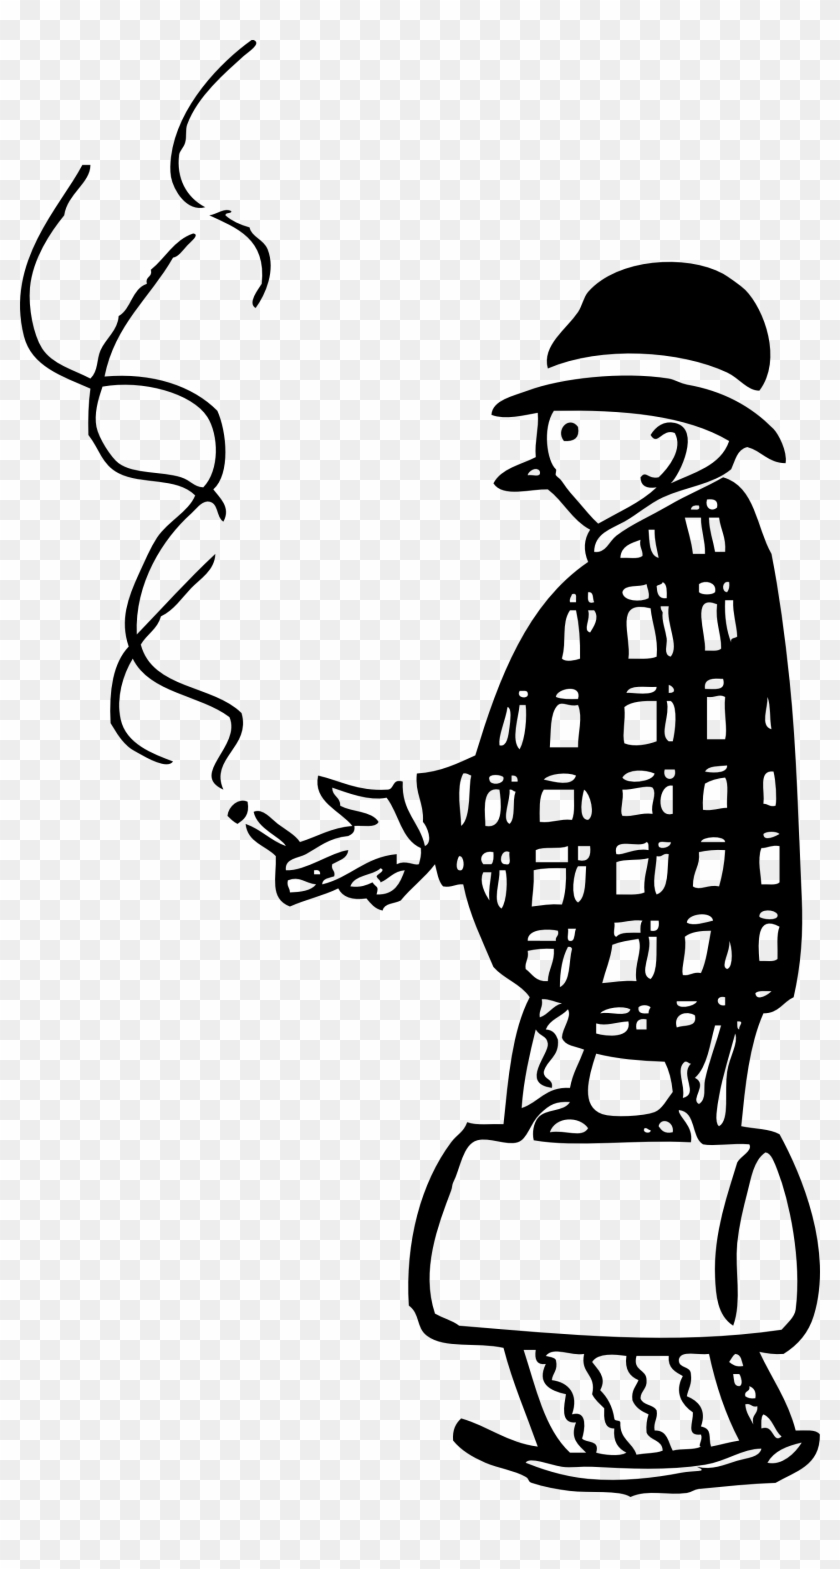 Free Retro Clipart Of A Family Doctor Smoking Cigar - Man Smoking Cigar Png #563579